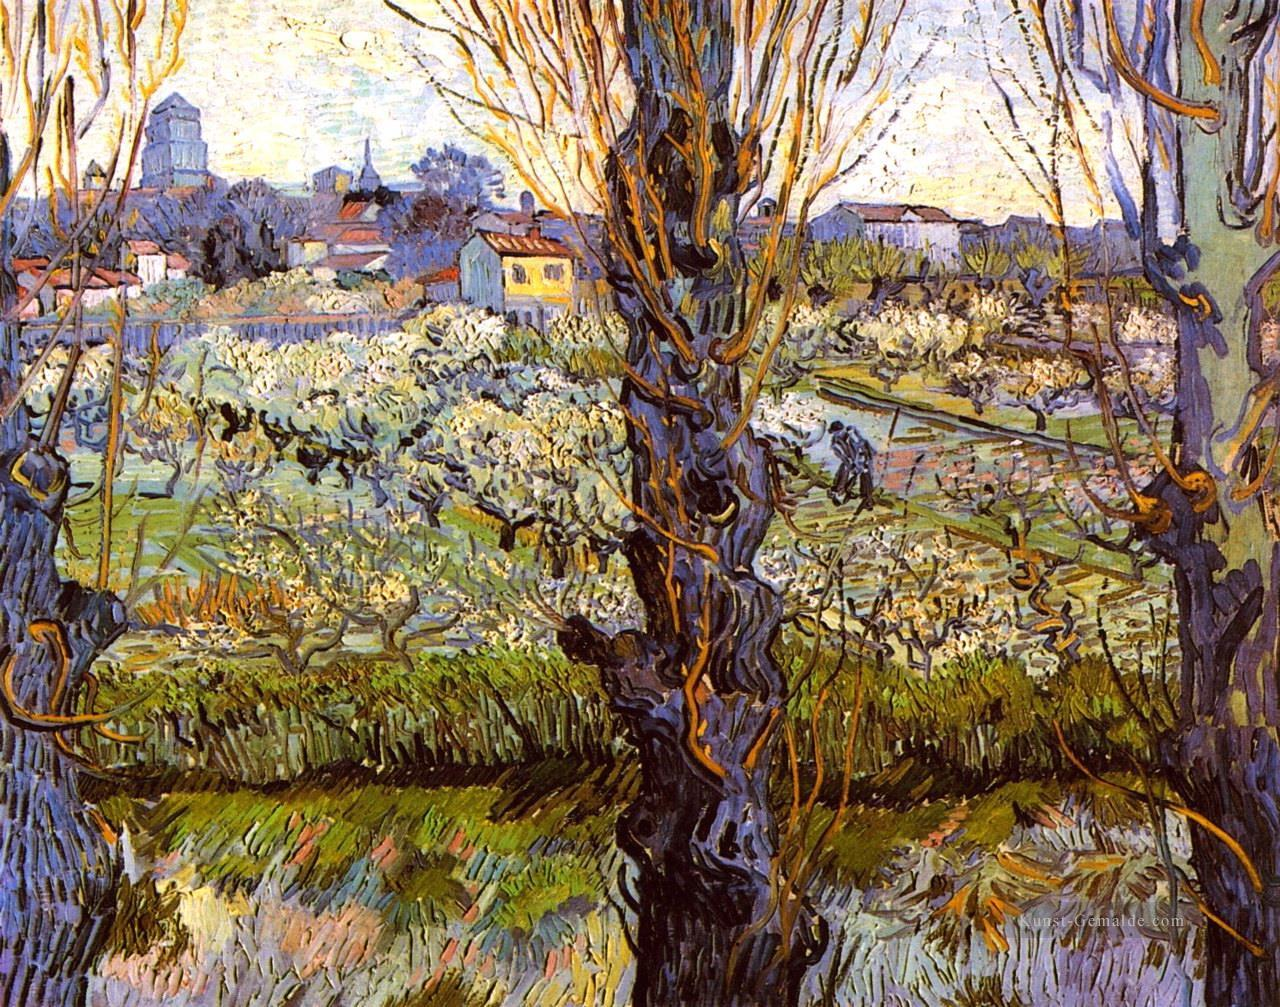 Orchard in Bloom mit Pappeln Vincent van Gogh Ölgemälde